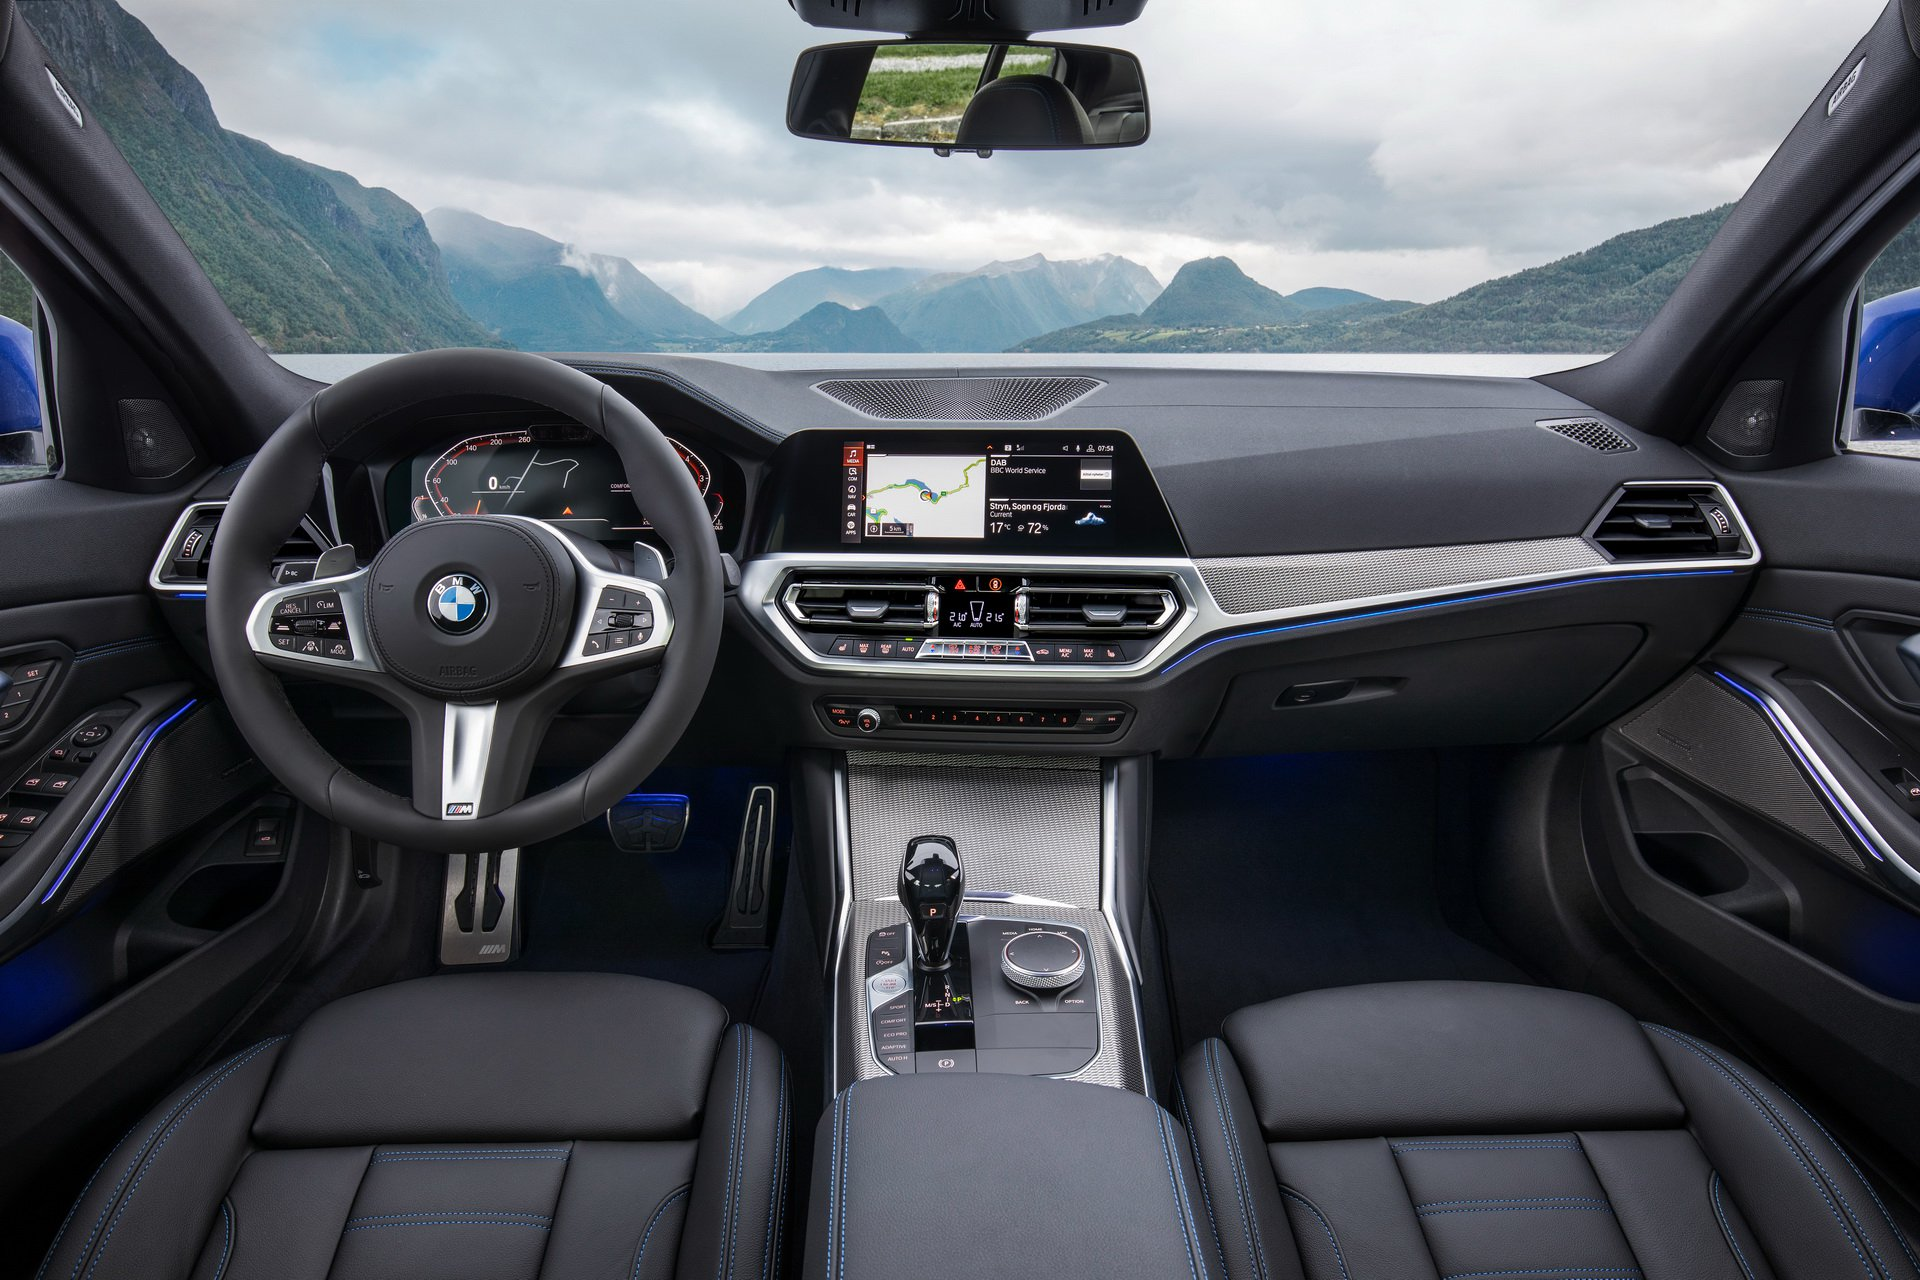 2019 BMW 3 series interior cabin